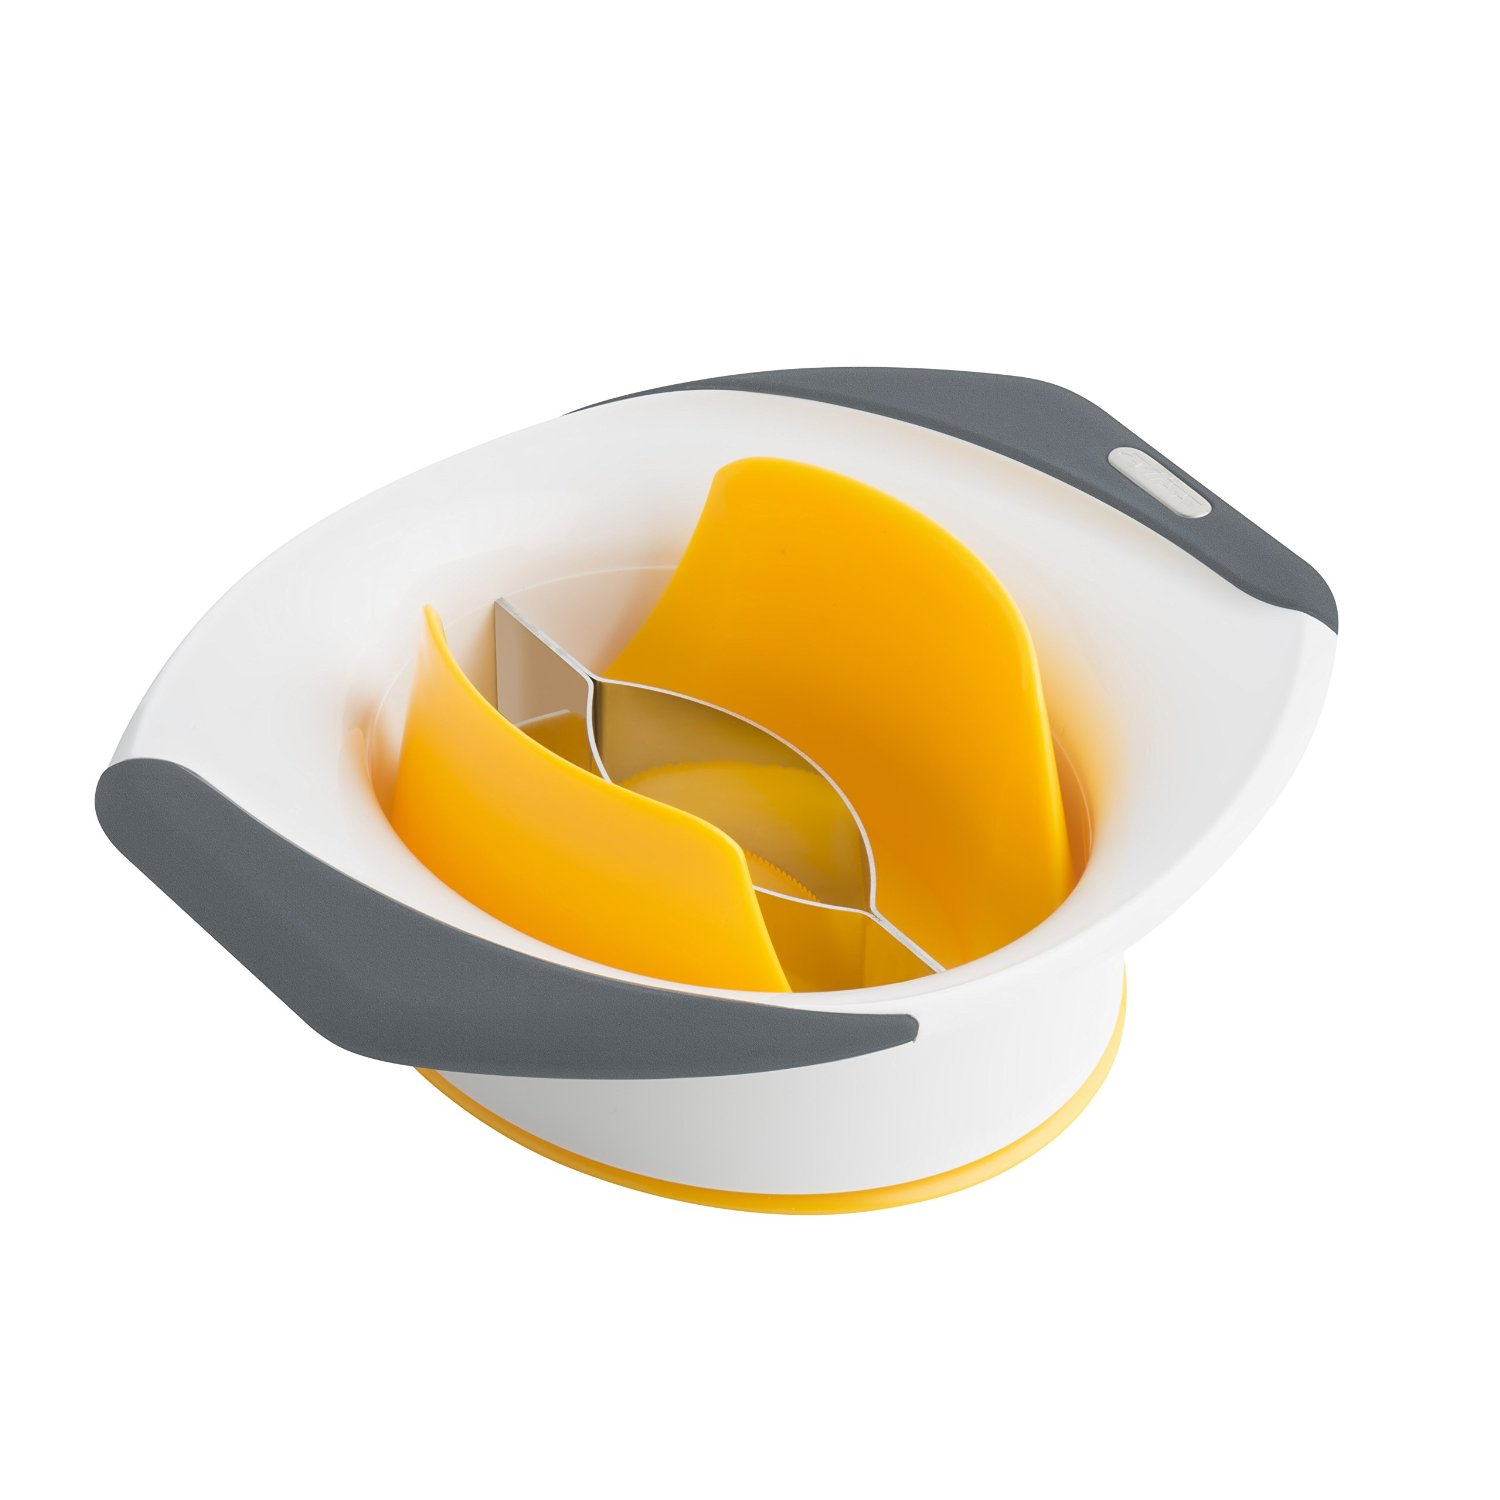 3-in-1 Mango Slicer, Peeler and Pit Remover Tool, Ship from America by